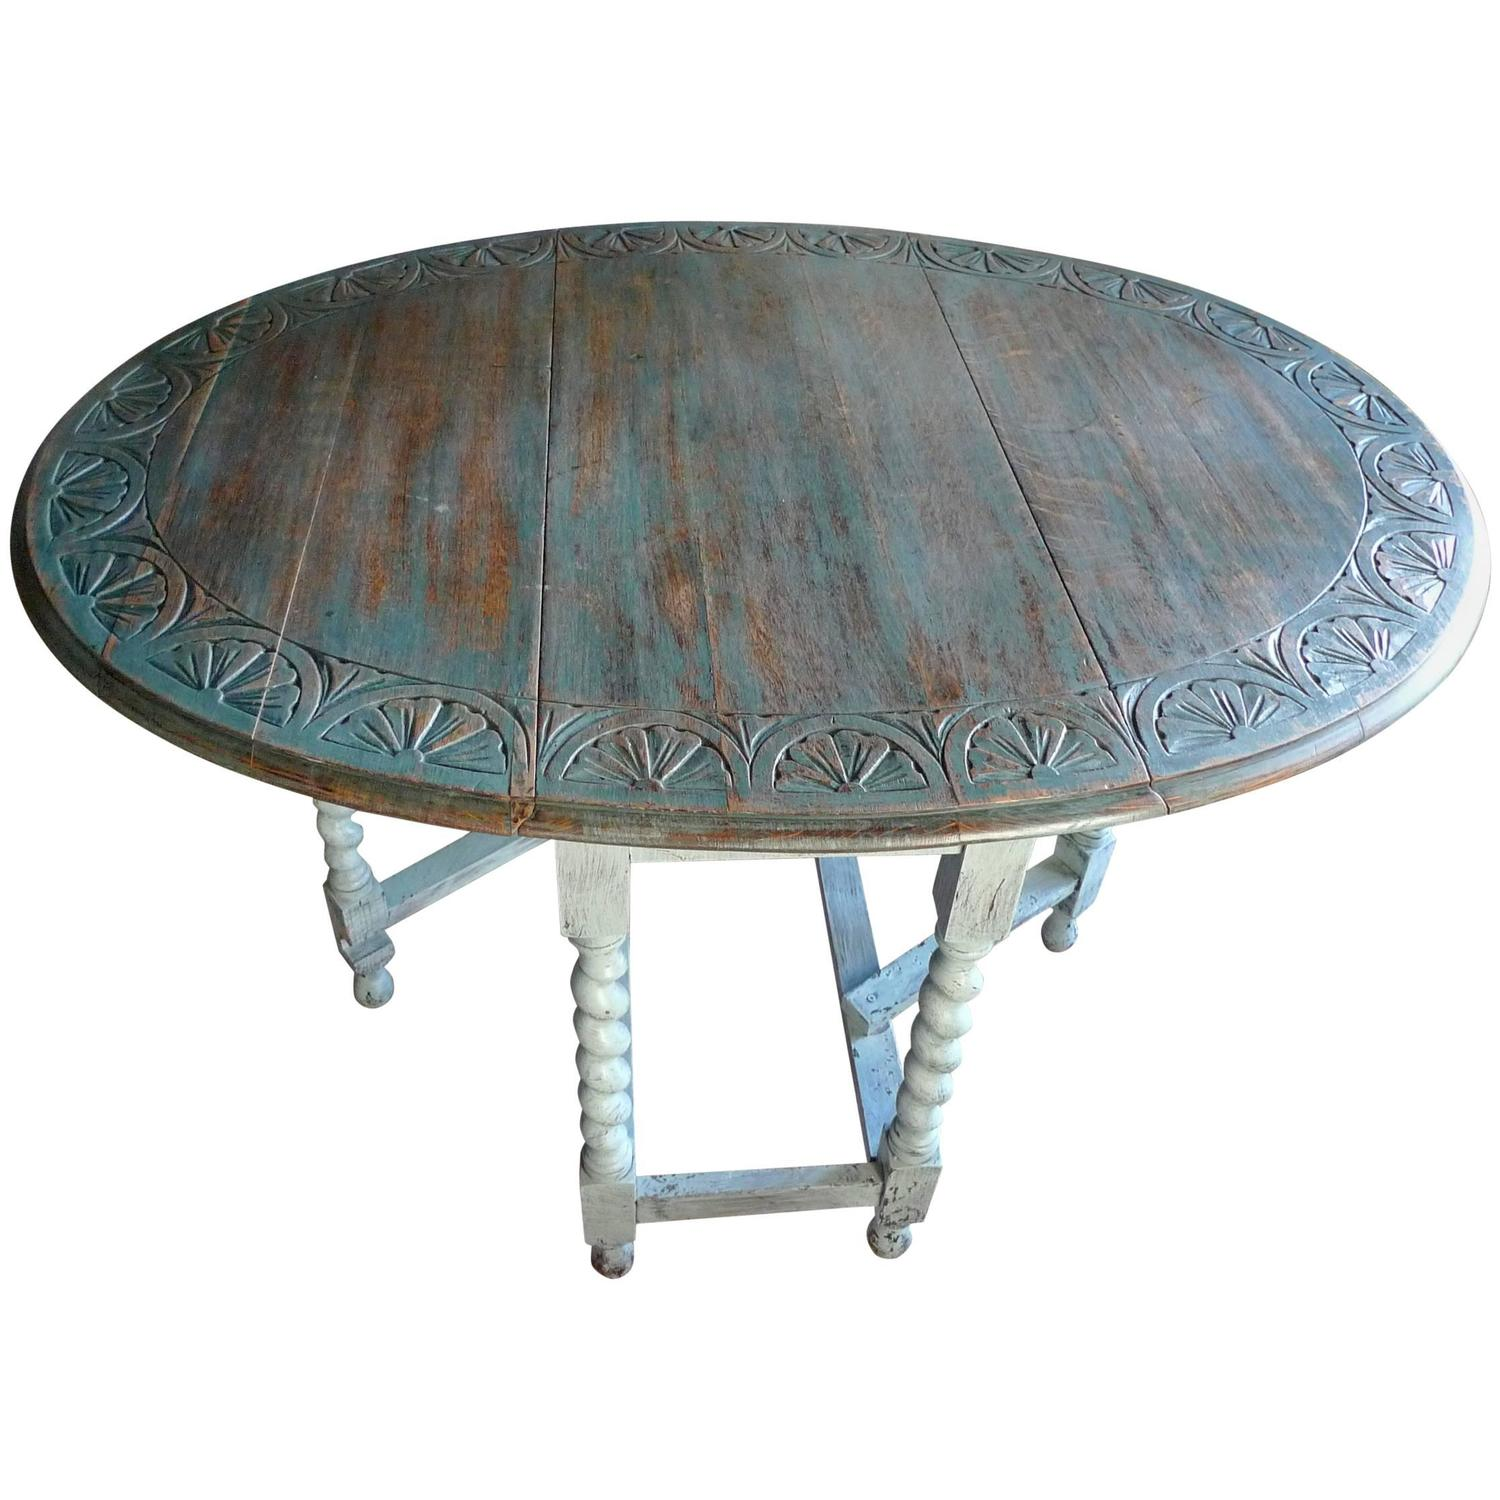 19th Century Oak Carved Top Drop Leaf Table with Gate Leg and